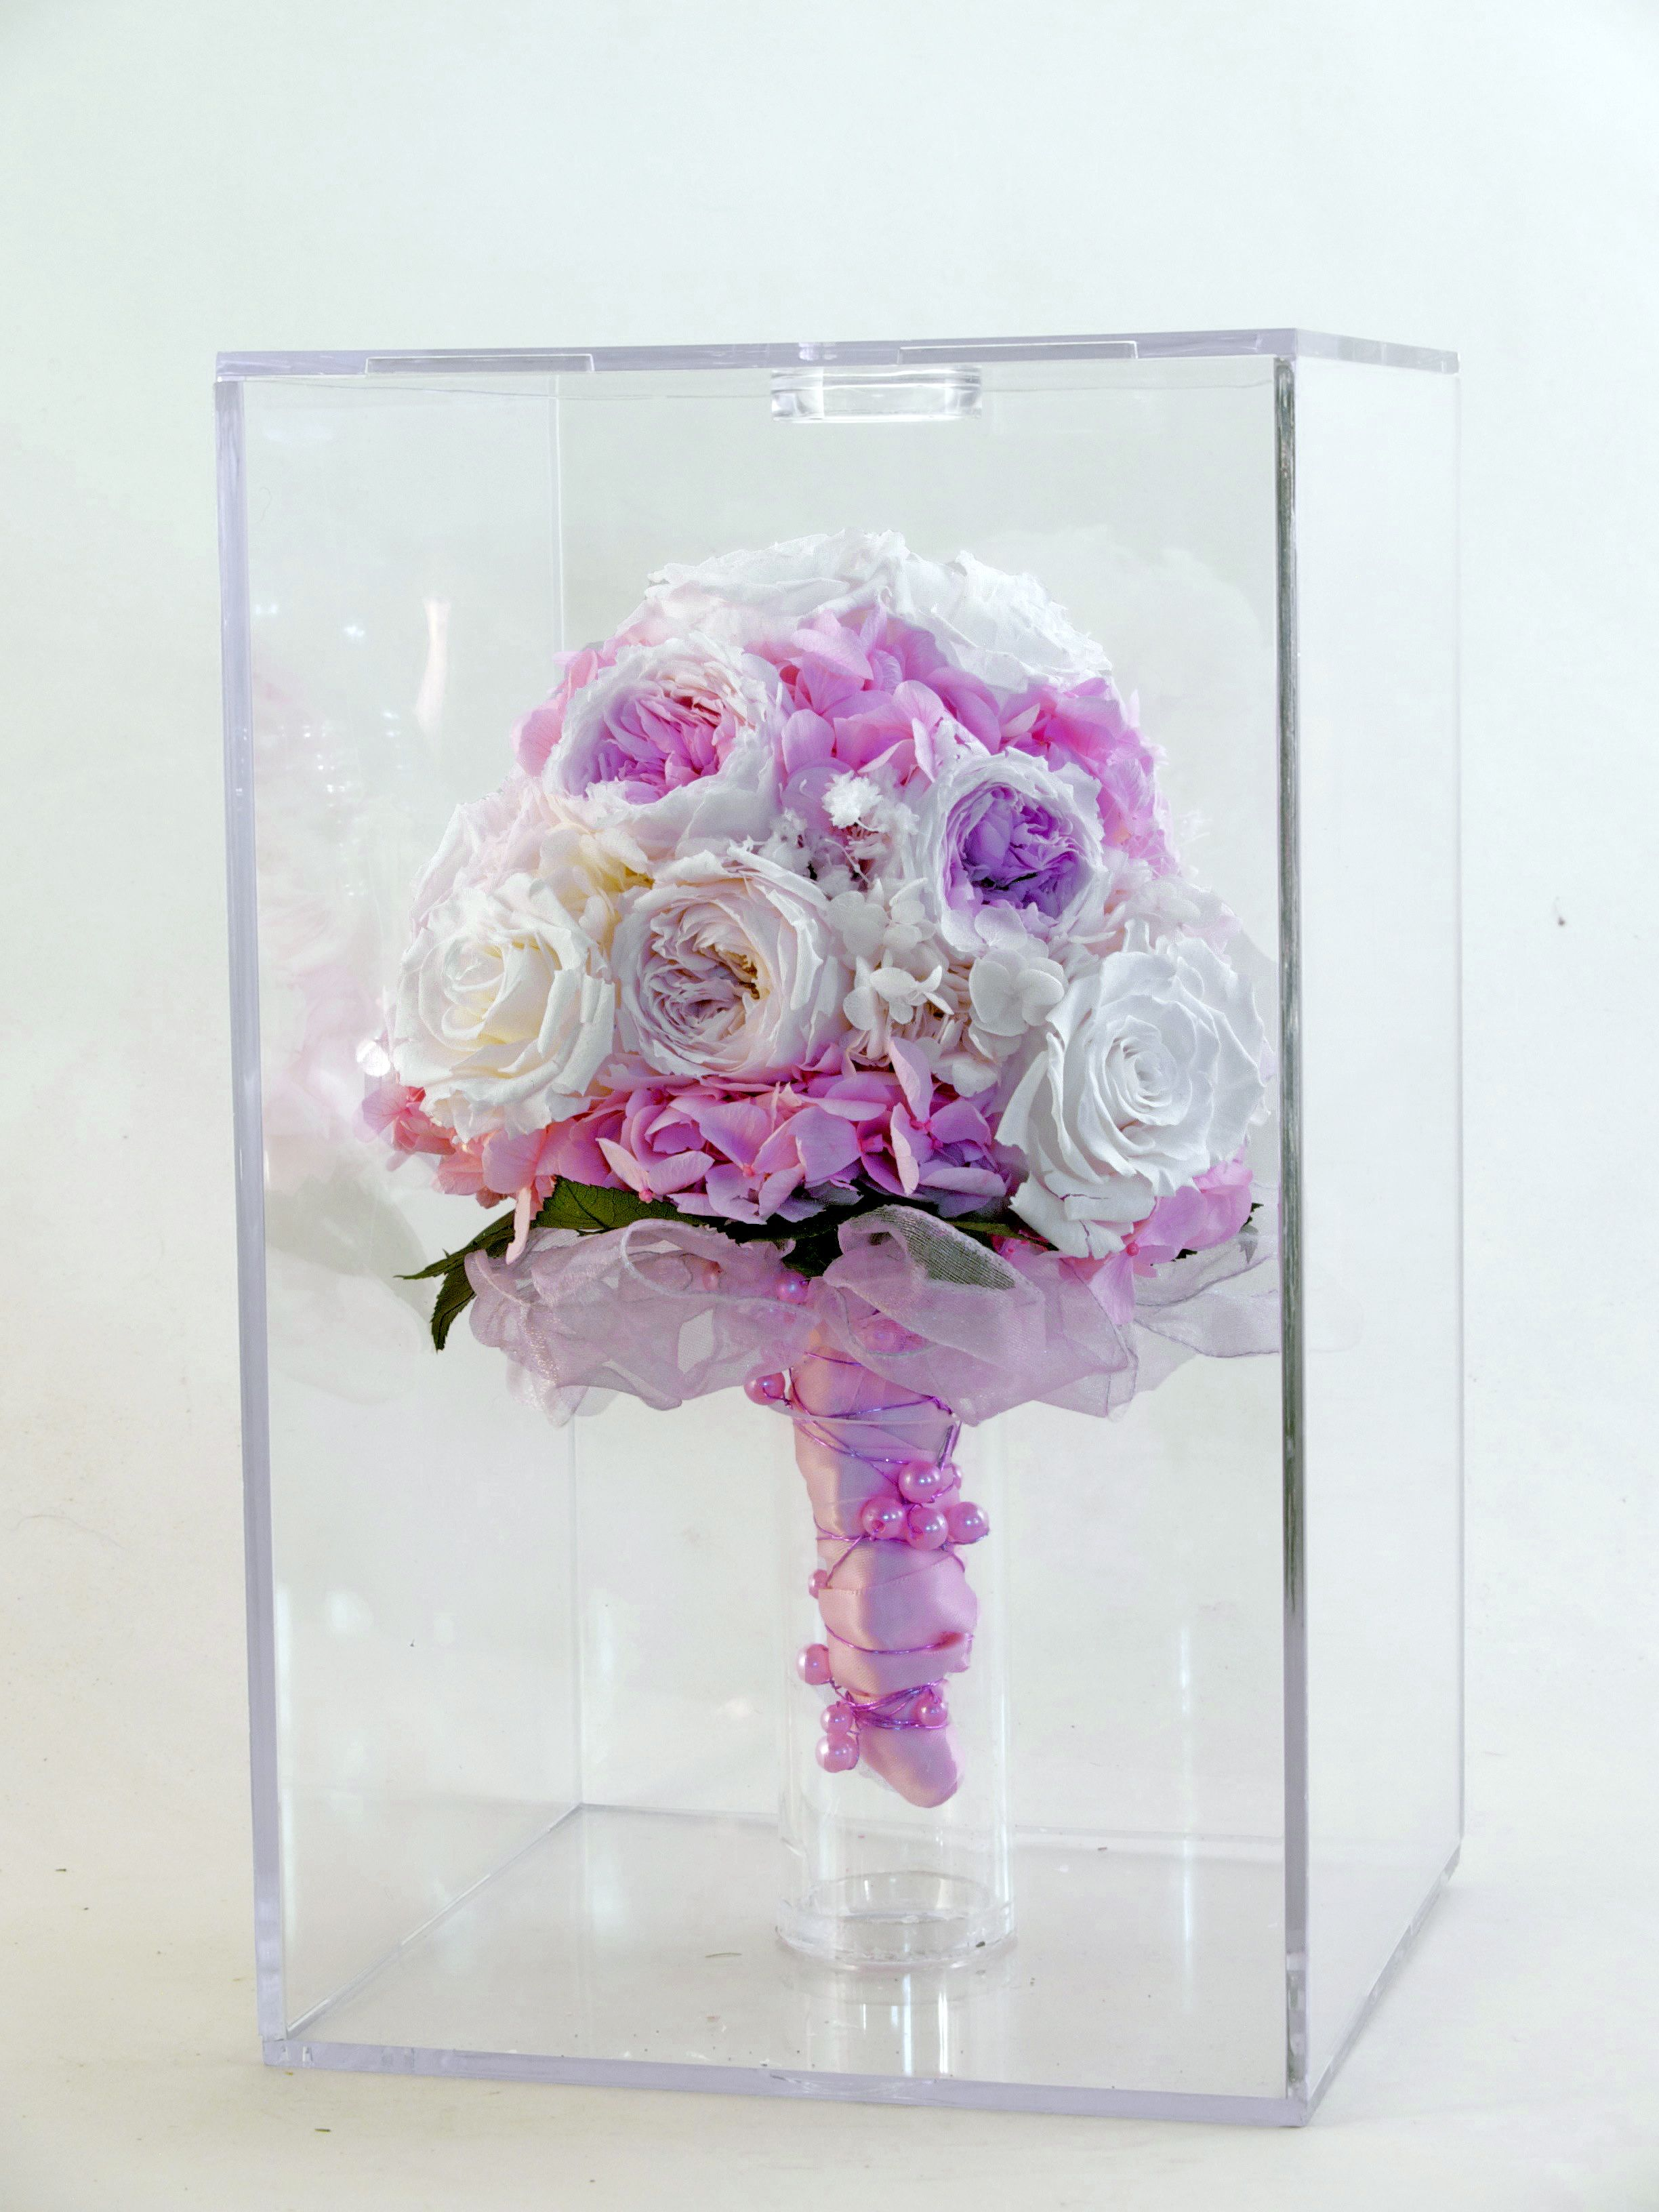 Bridal bouquet of unique preserved roses in a display and